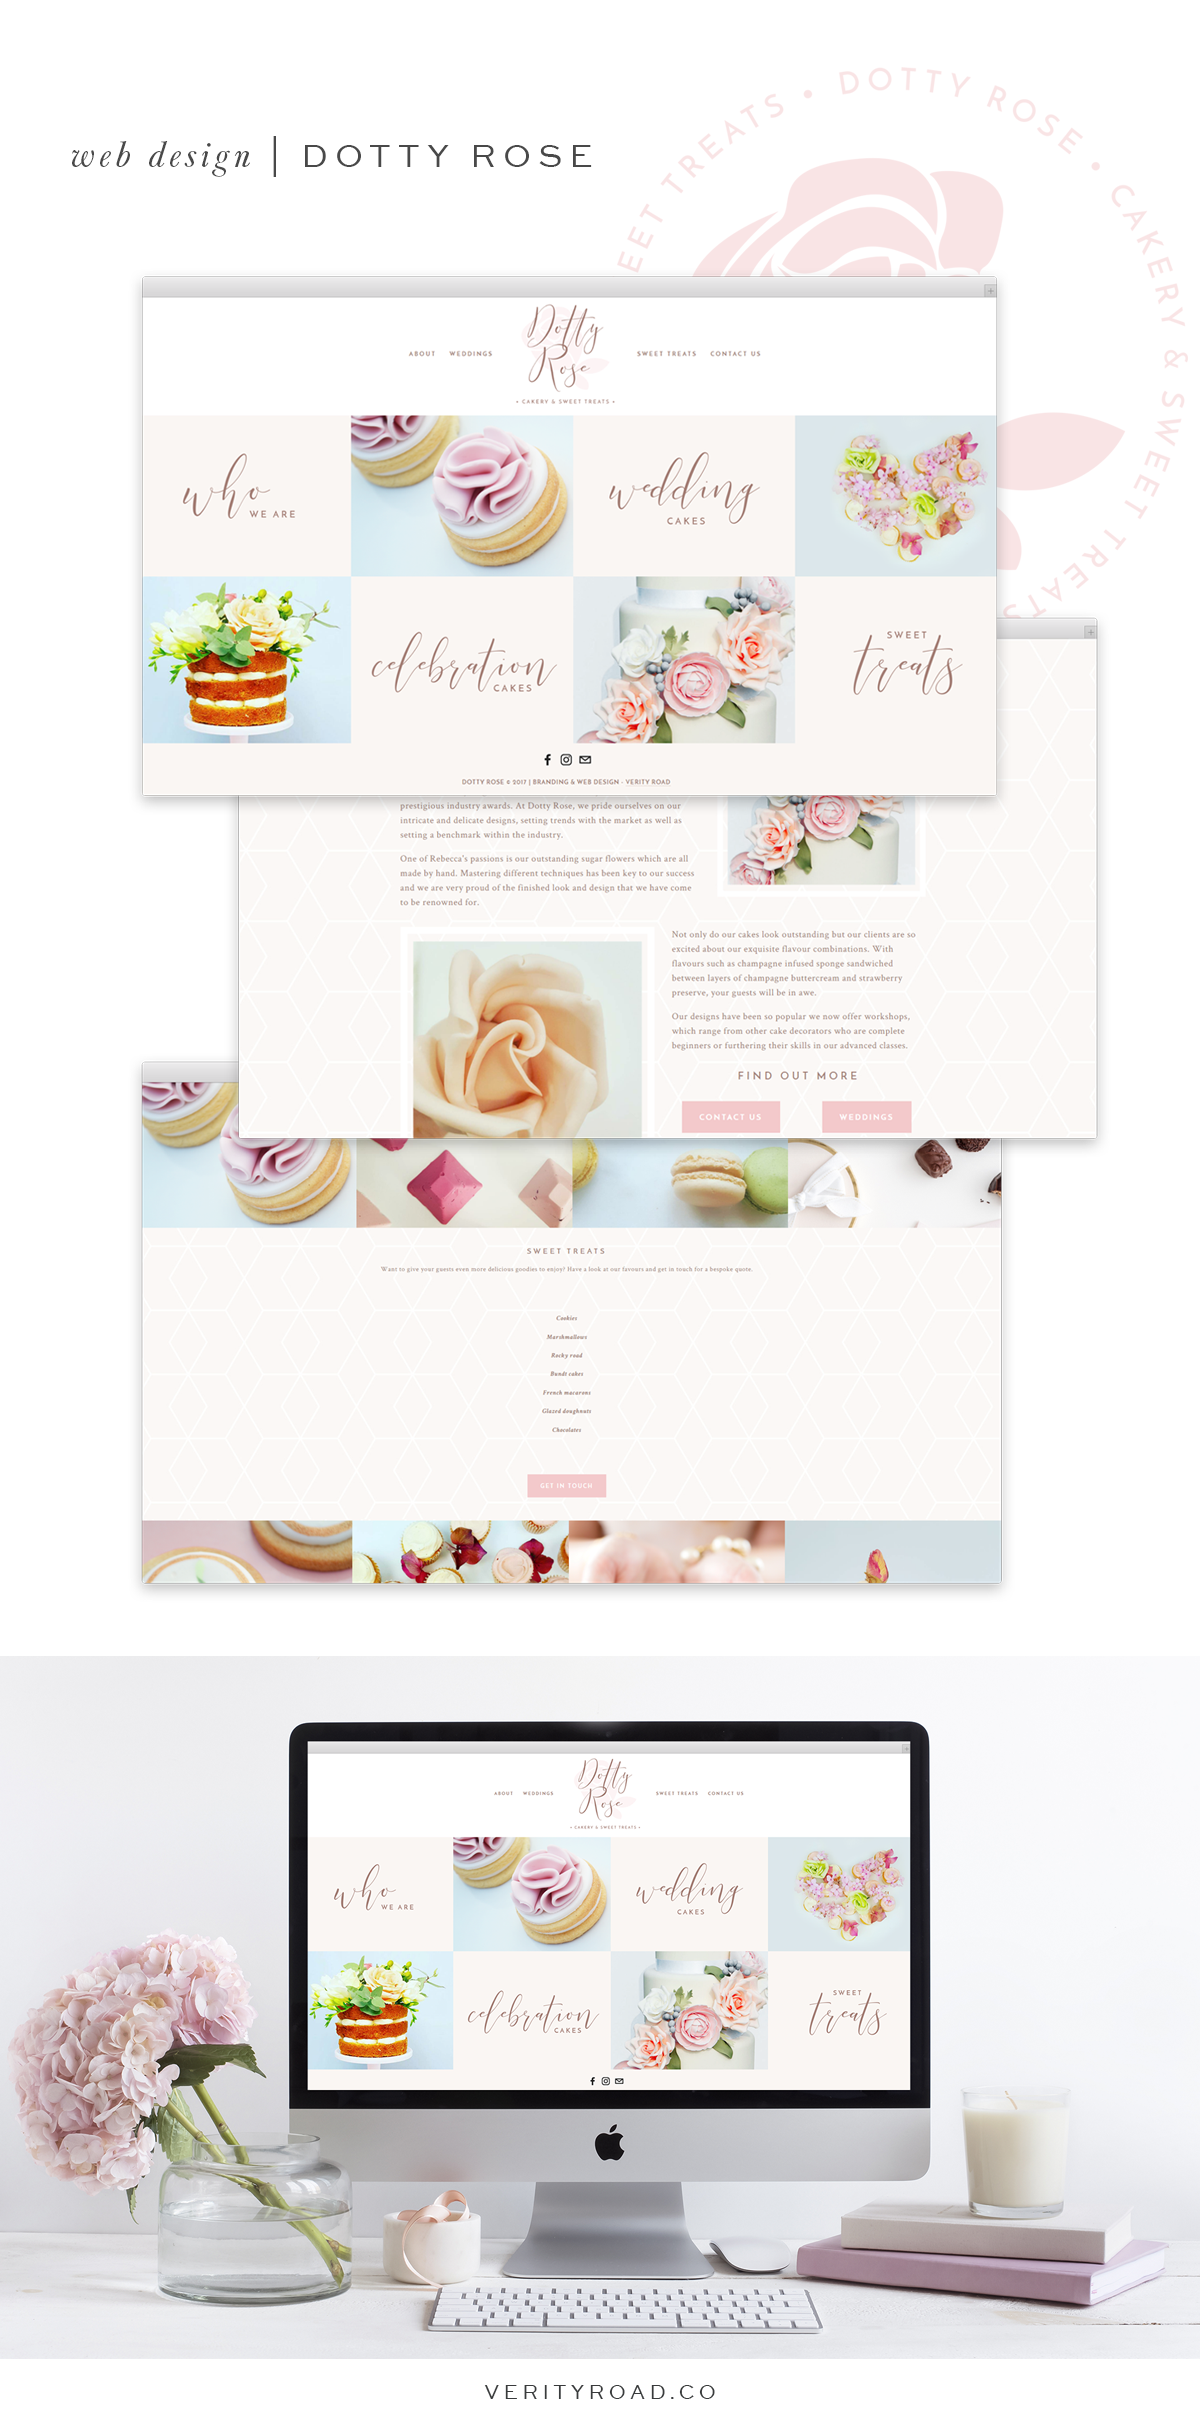 web design for dotty rose cakery and sweet treats, wedding professional, wedding business branding, feminine branding, wedding cake designer, luxury branding for female entrepreneurs. squarespace design, pastel color palette, feminine business. See more for brand board, brand style guide, social media branding and inspiration.